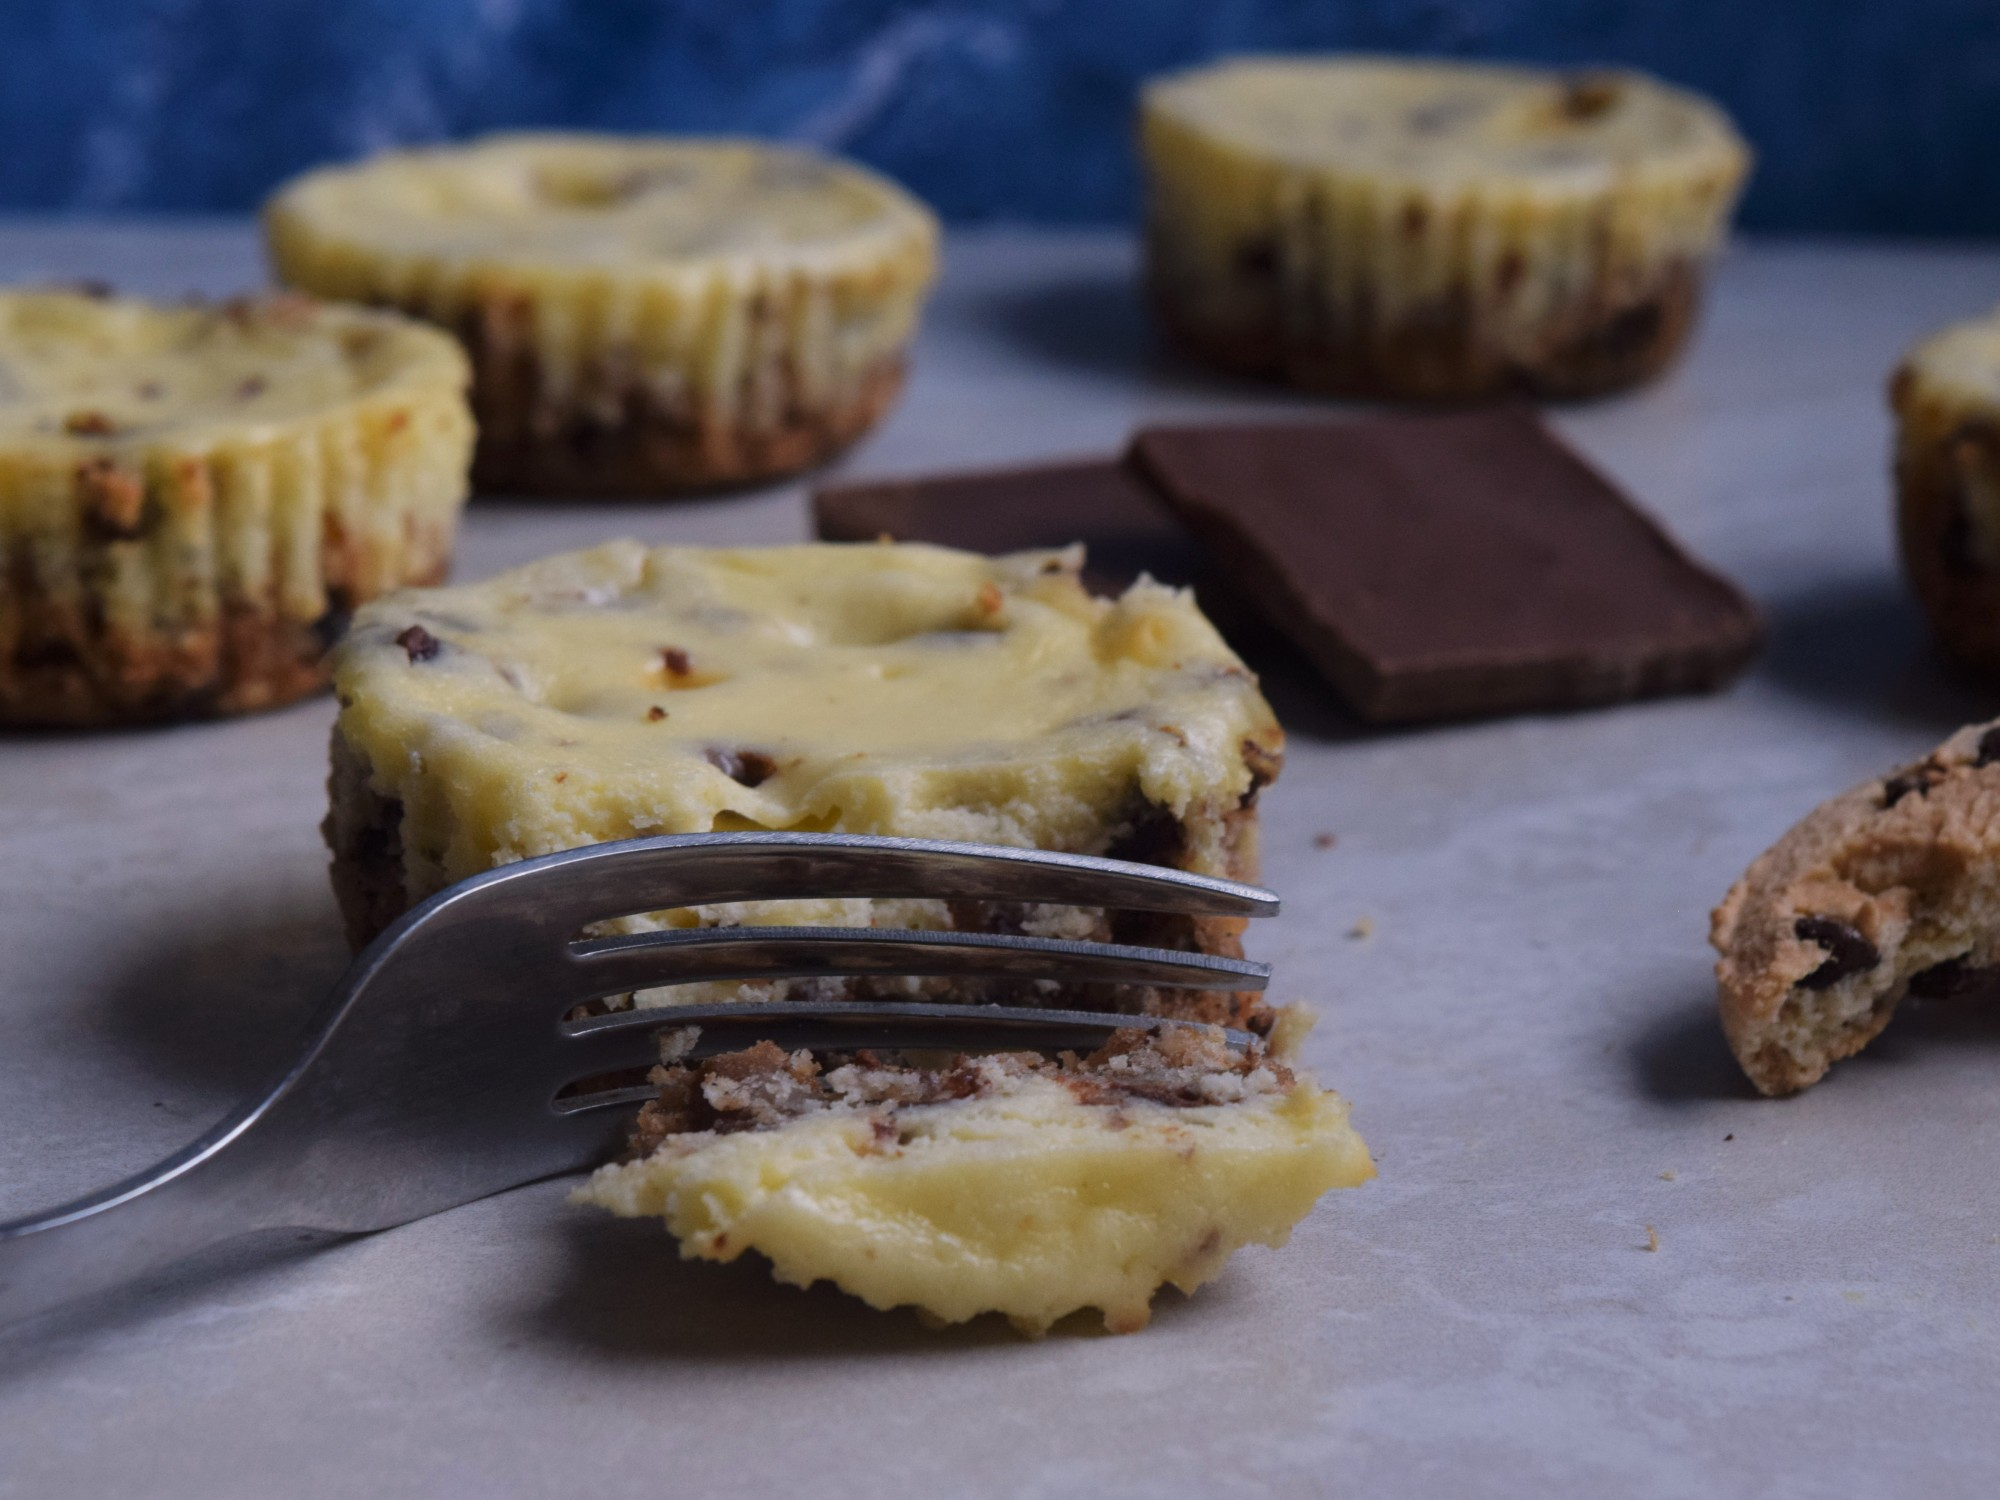 Indiviual Chocolate Chip Cheesecakes - perfect for when you want cheesecake, but don't want to make a whole cake